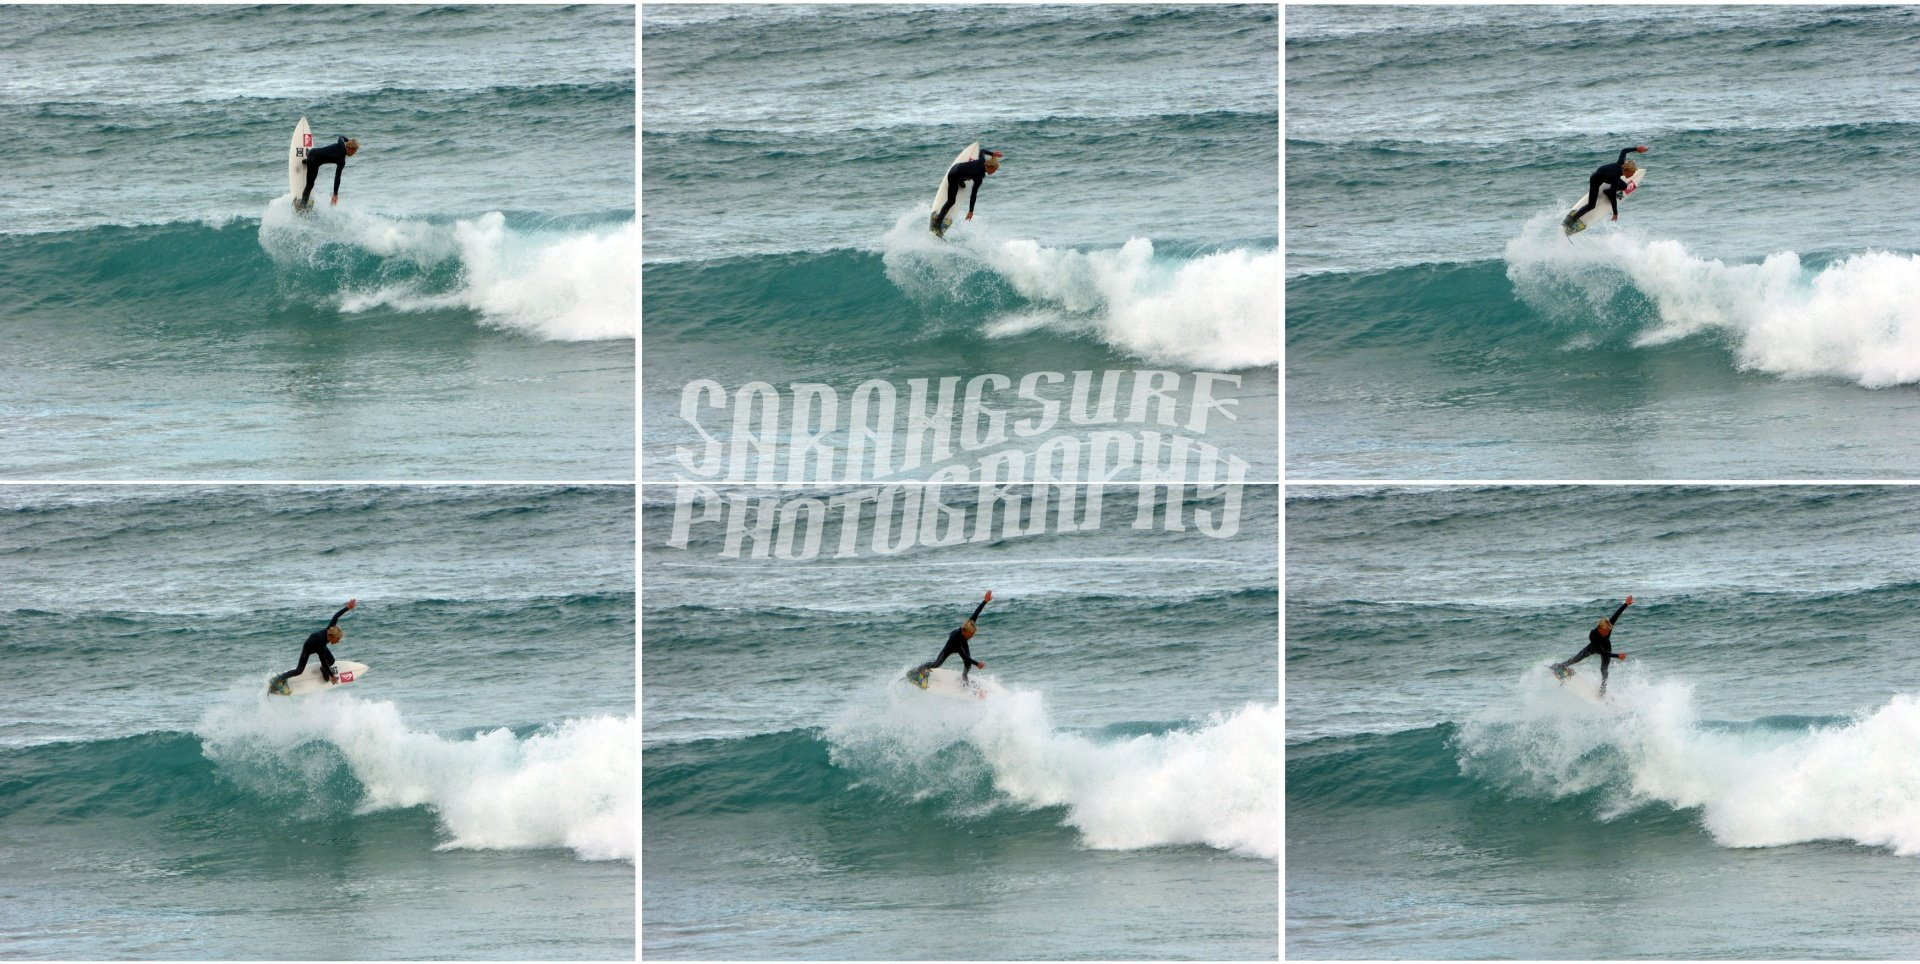 SARAHG SURF PHOTOGRAPHY's photo of Porthmeor